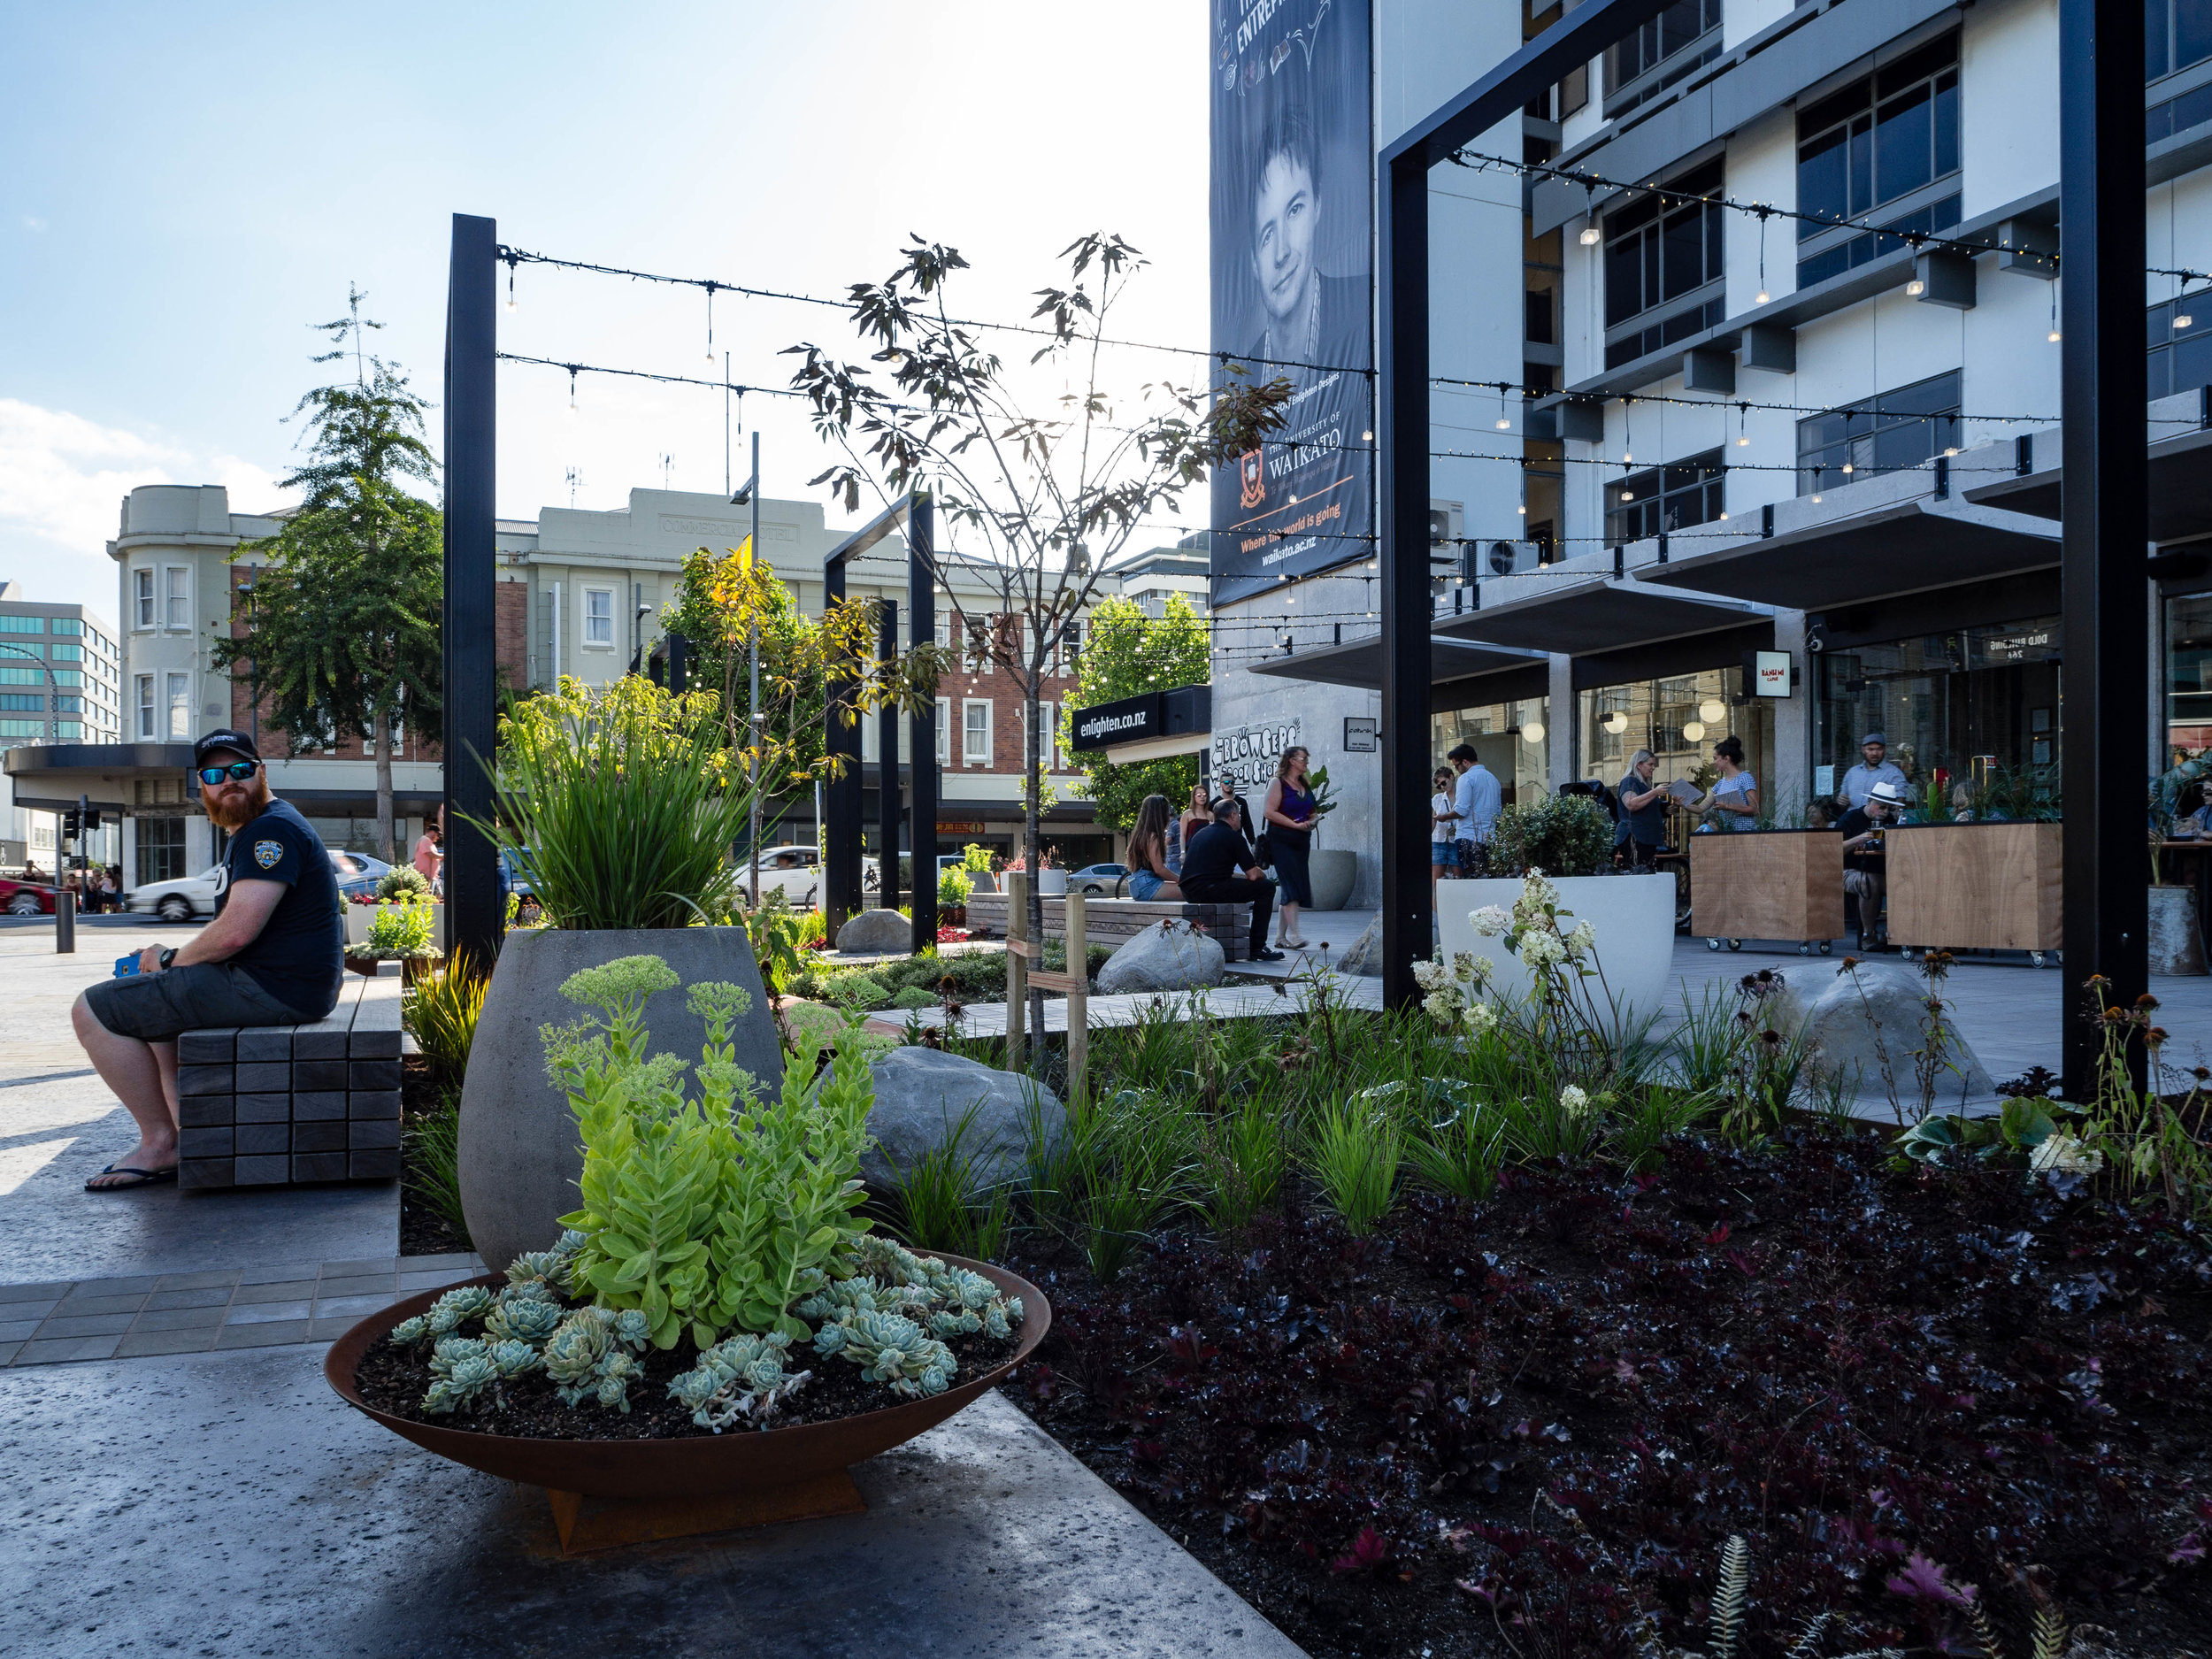 More than 9000 plants feature in the design of Victoria on the River, giving it a green and organic feel that blends in the natural landscapes of the Waikato River. Exotic planting has been used near the access point from Victoria Street.